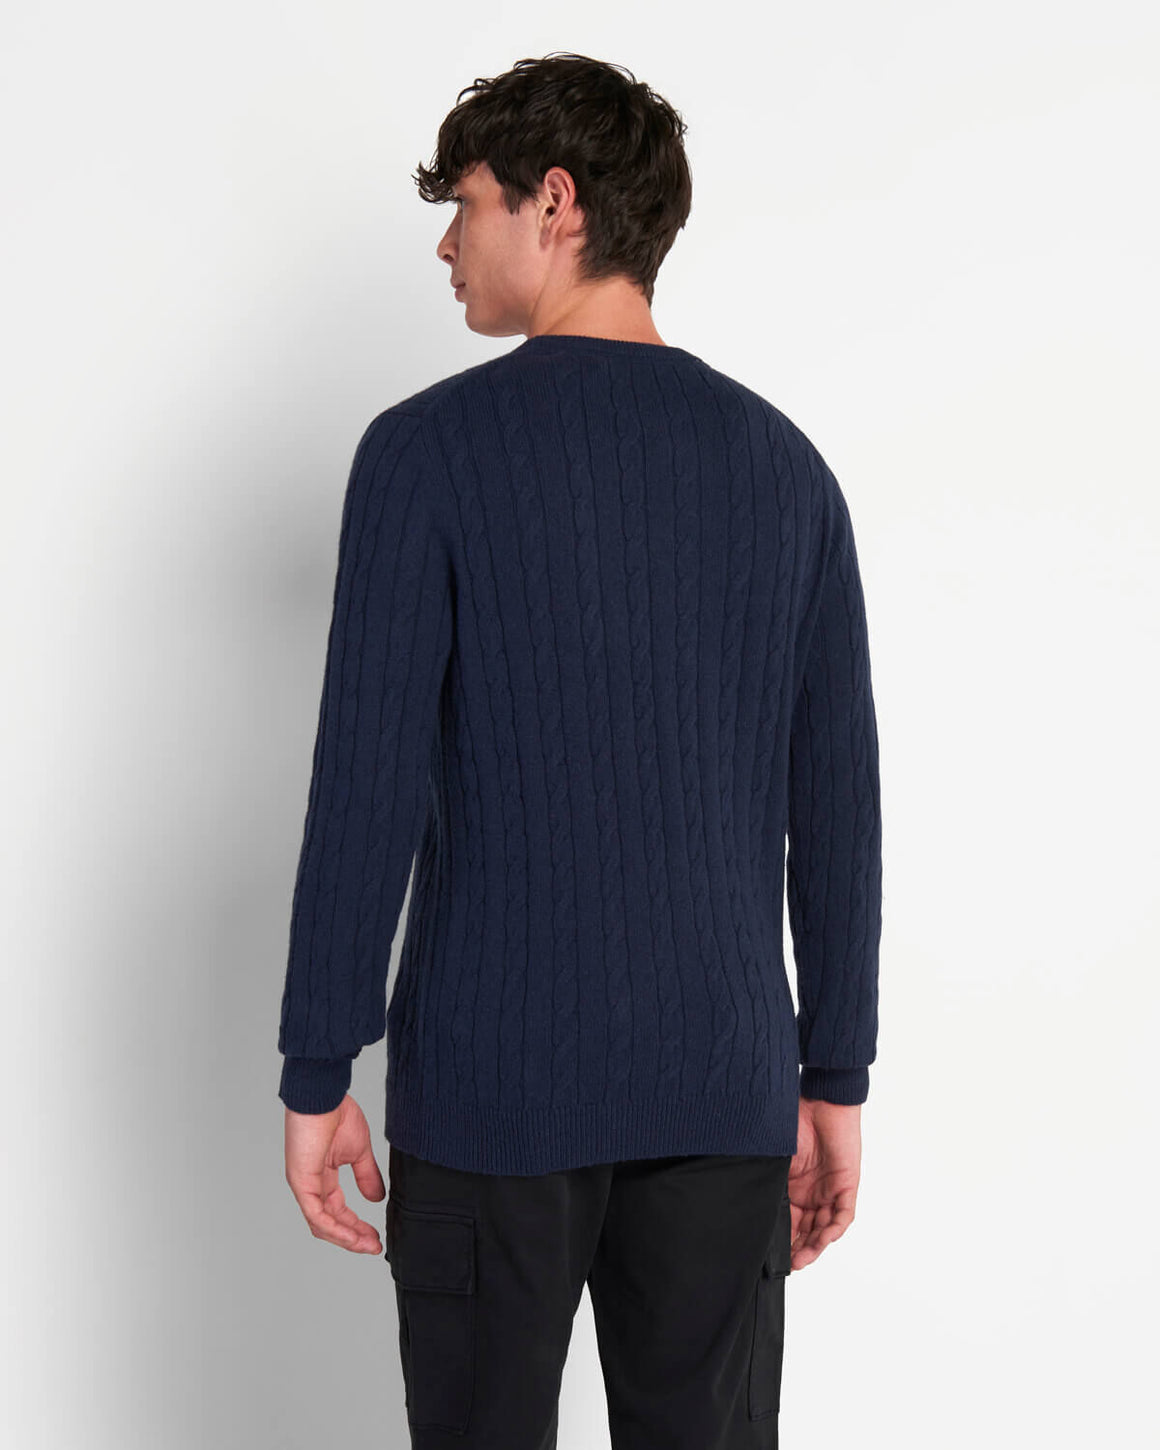 Cable Knit Jumper for Men in Navy